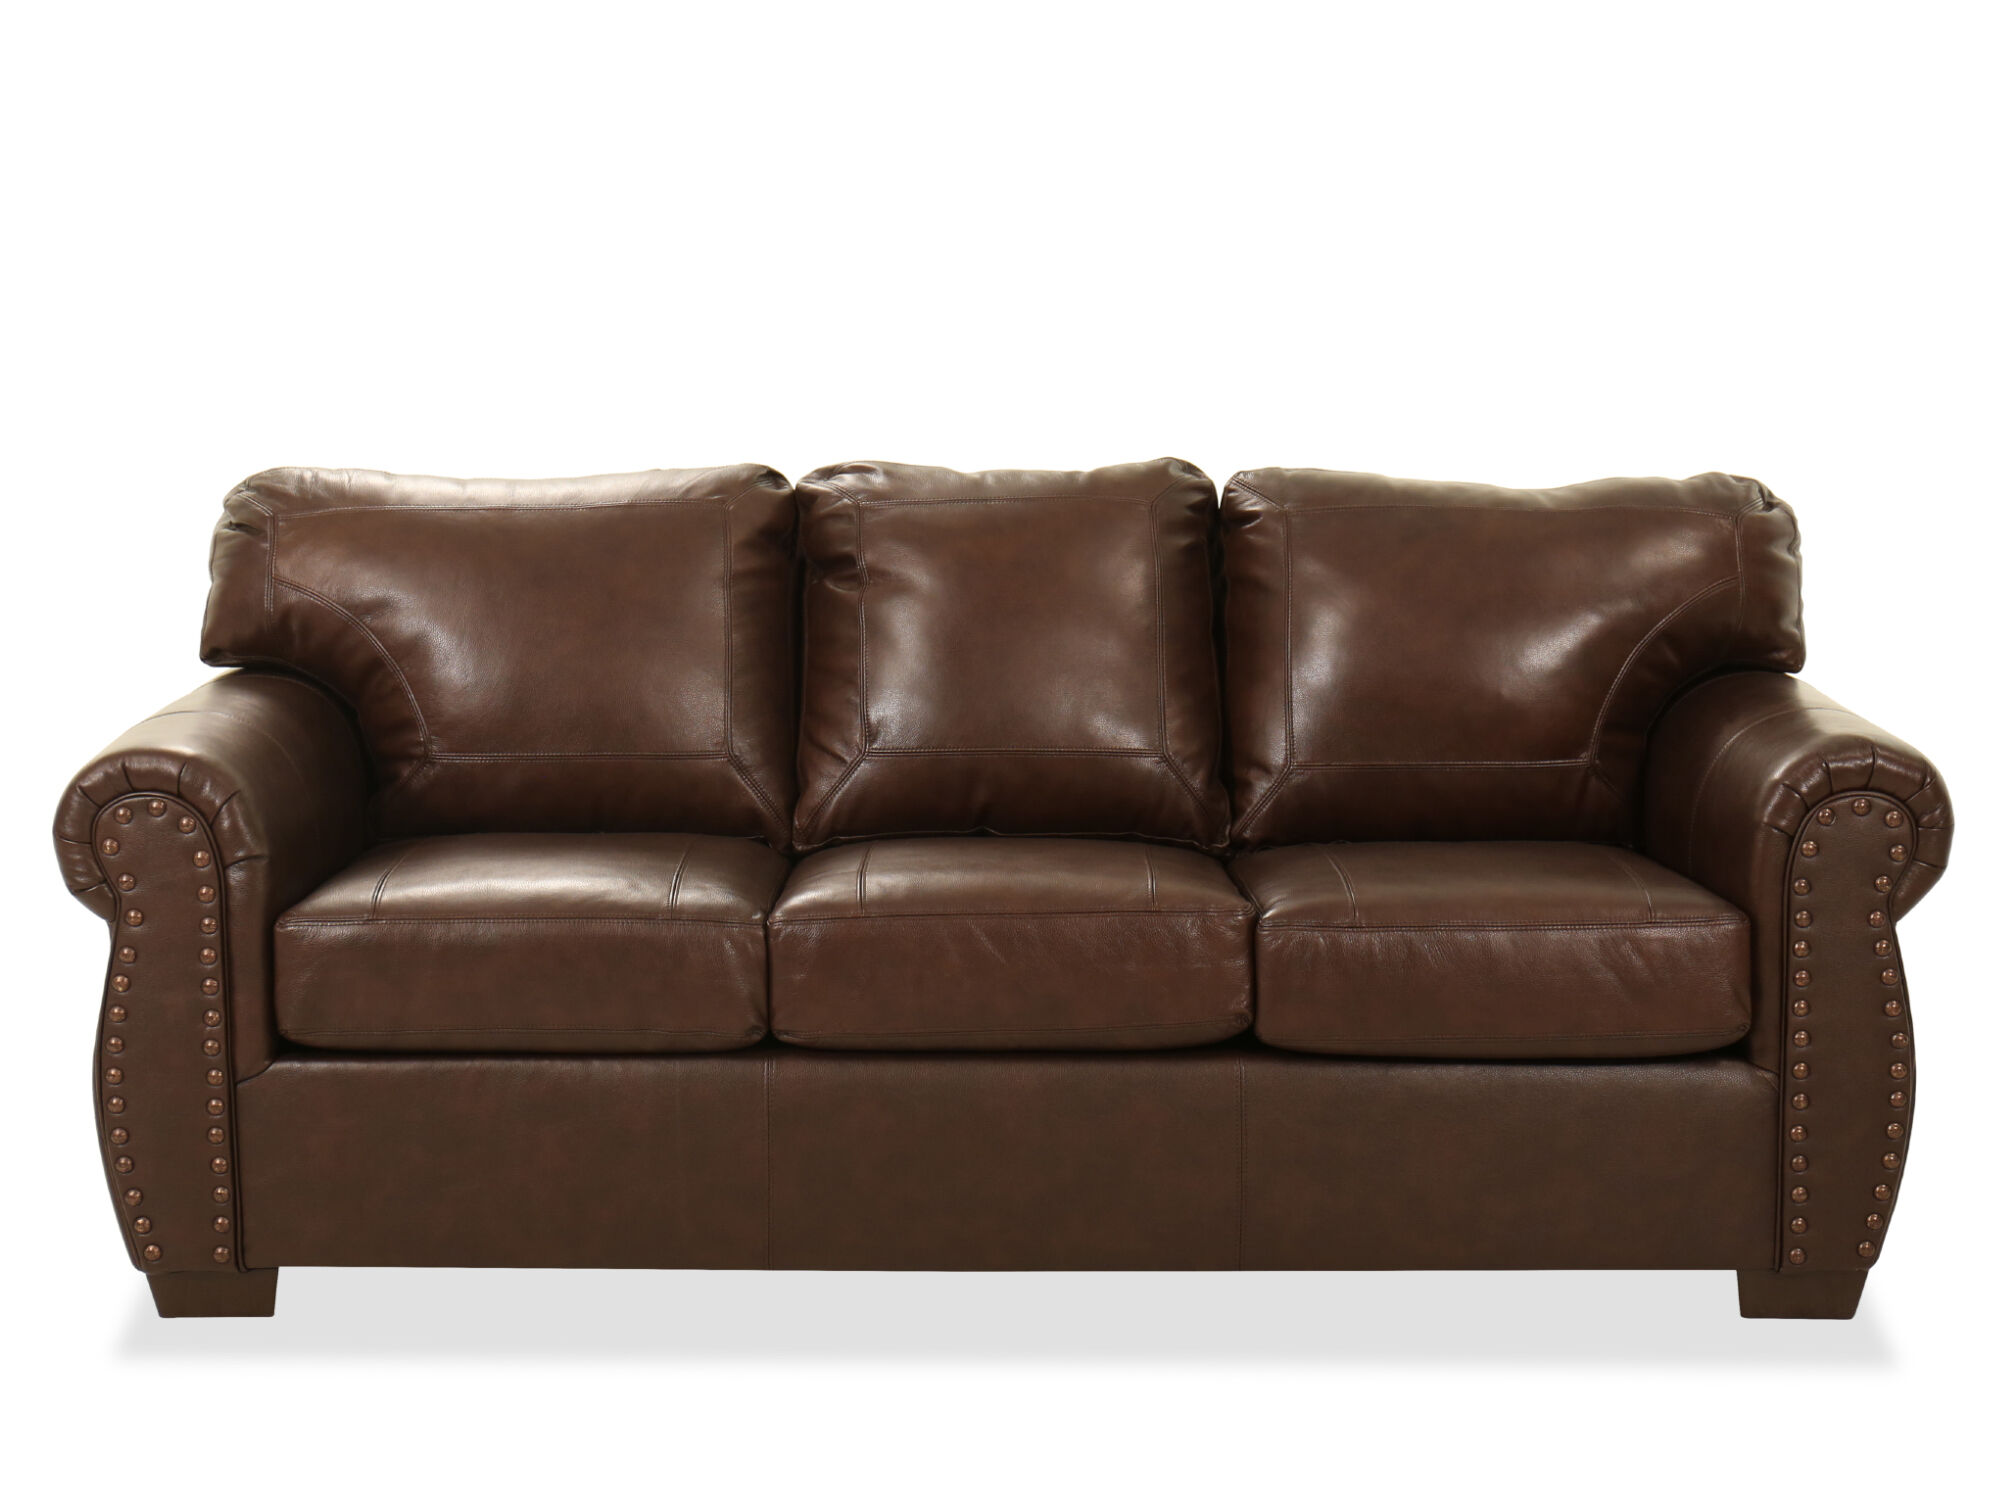 nailhead accent leather 90 sofa in